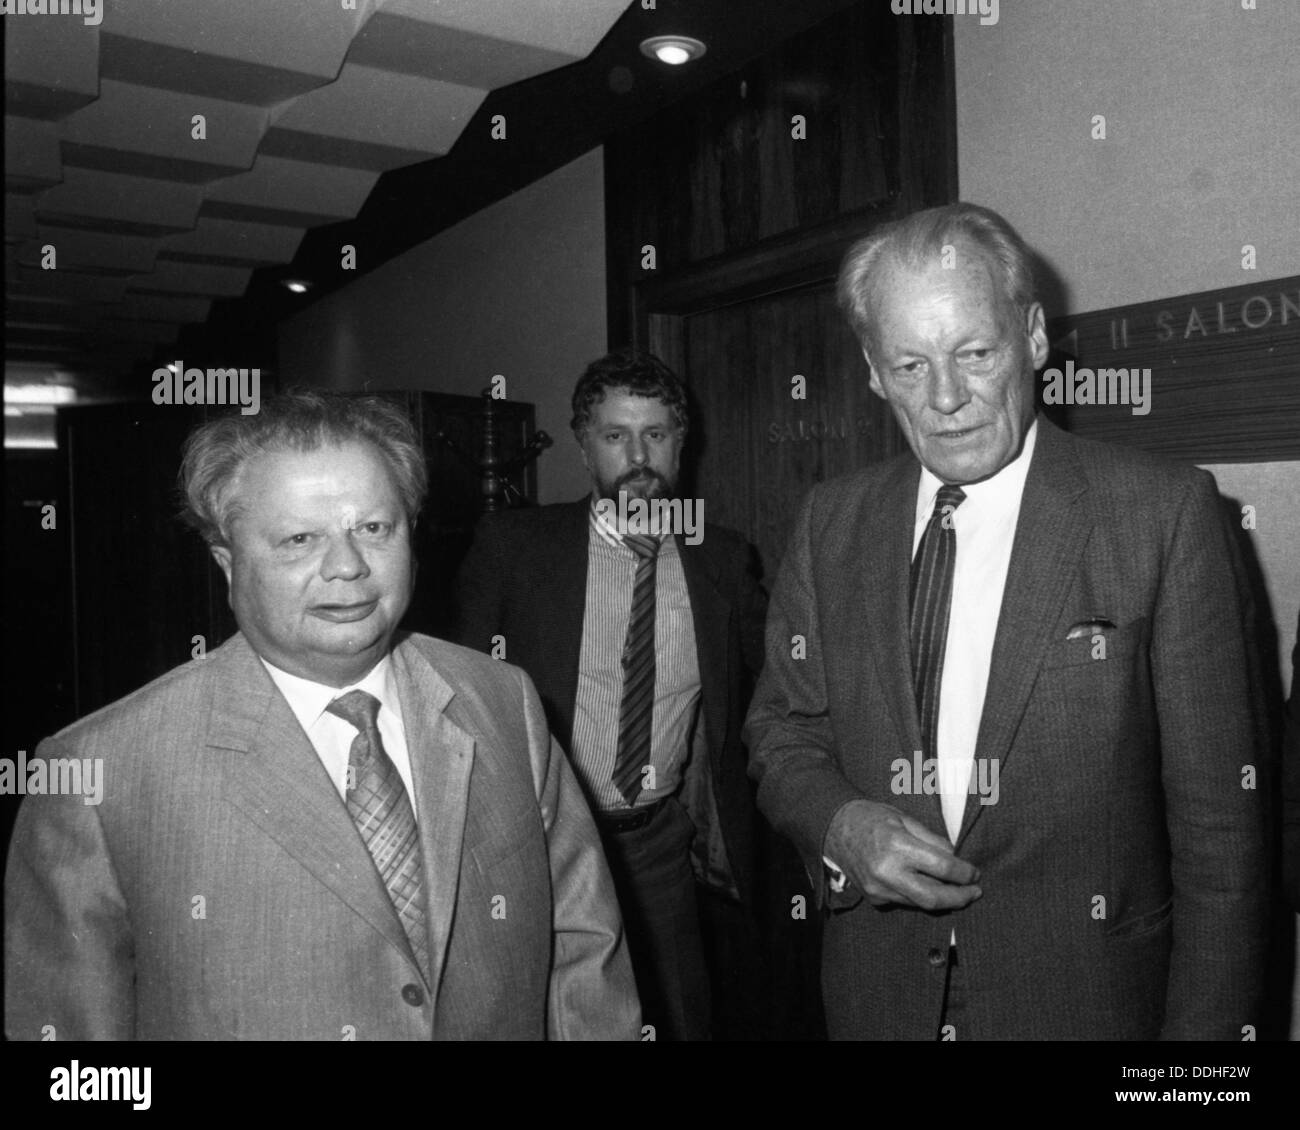 Joachim Vogel hermann axen member of the sed central committee and one of the